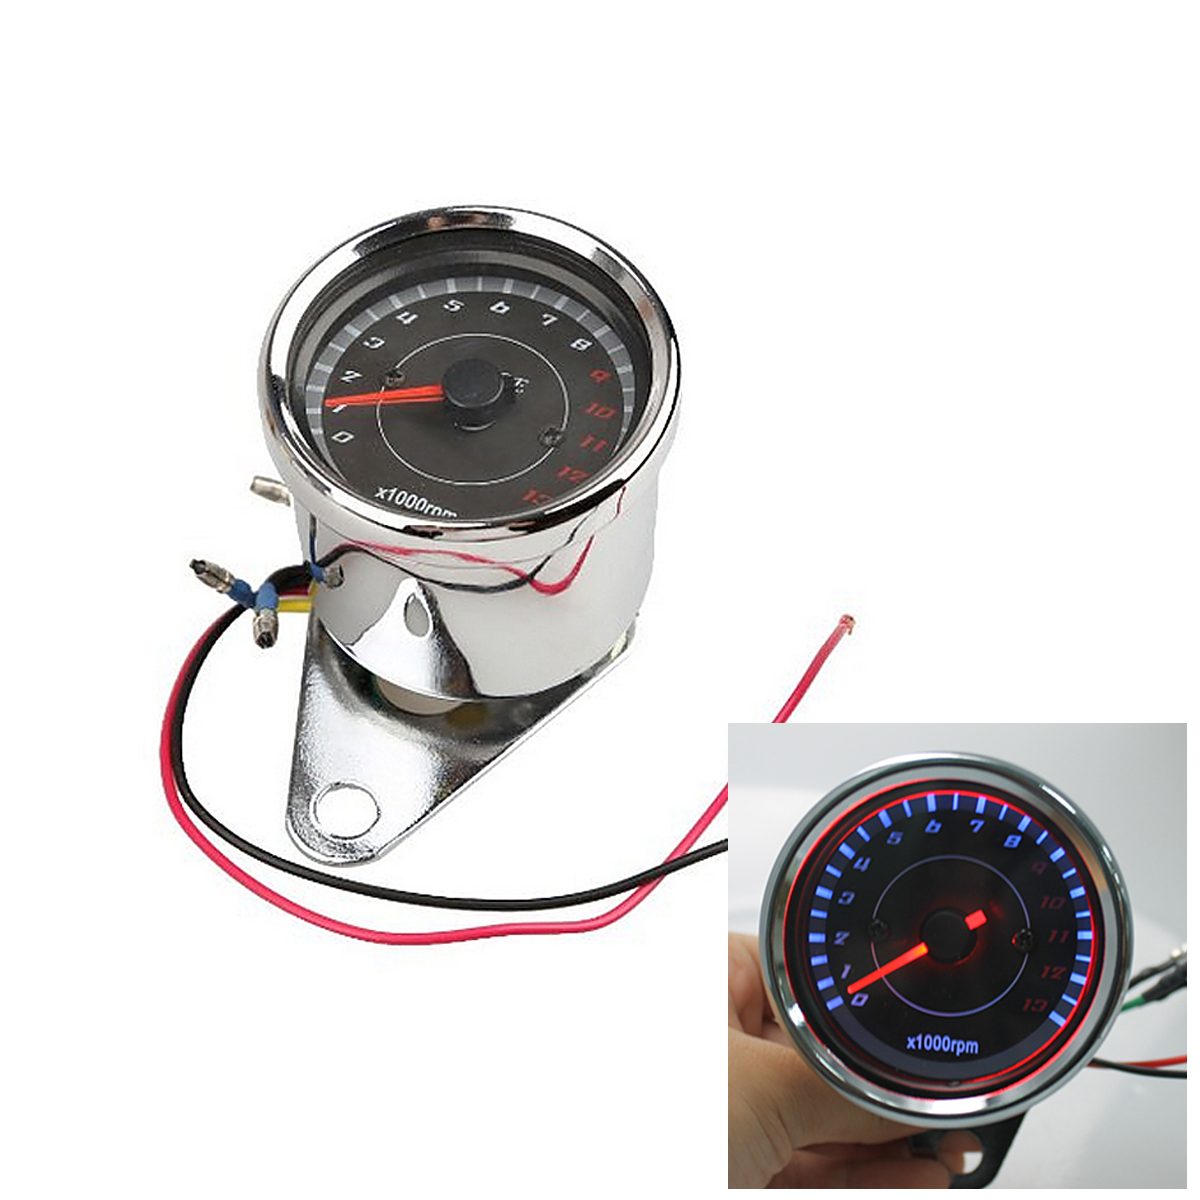 High Capacity Motorcycle Bike Speedometer Tachometer Odometer Replacement Rev Counter 0-1000 RPM Outdoor Sport Safety Accesssory high quality sbc8168 rev c2 100